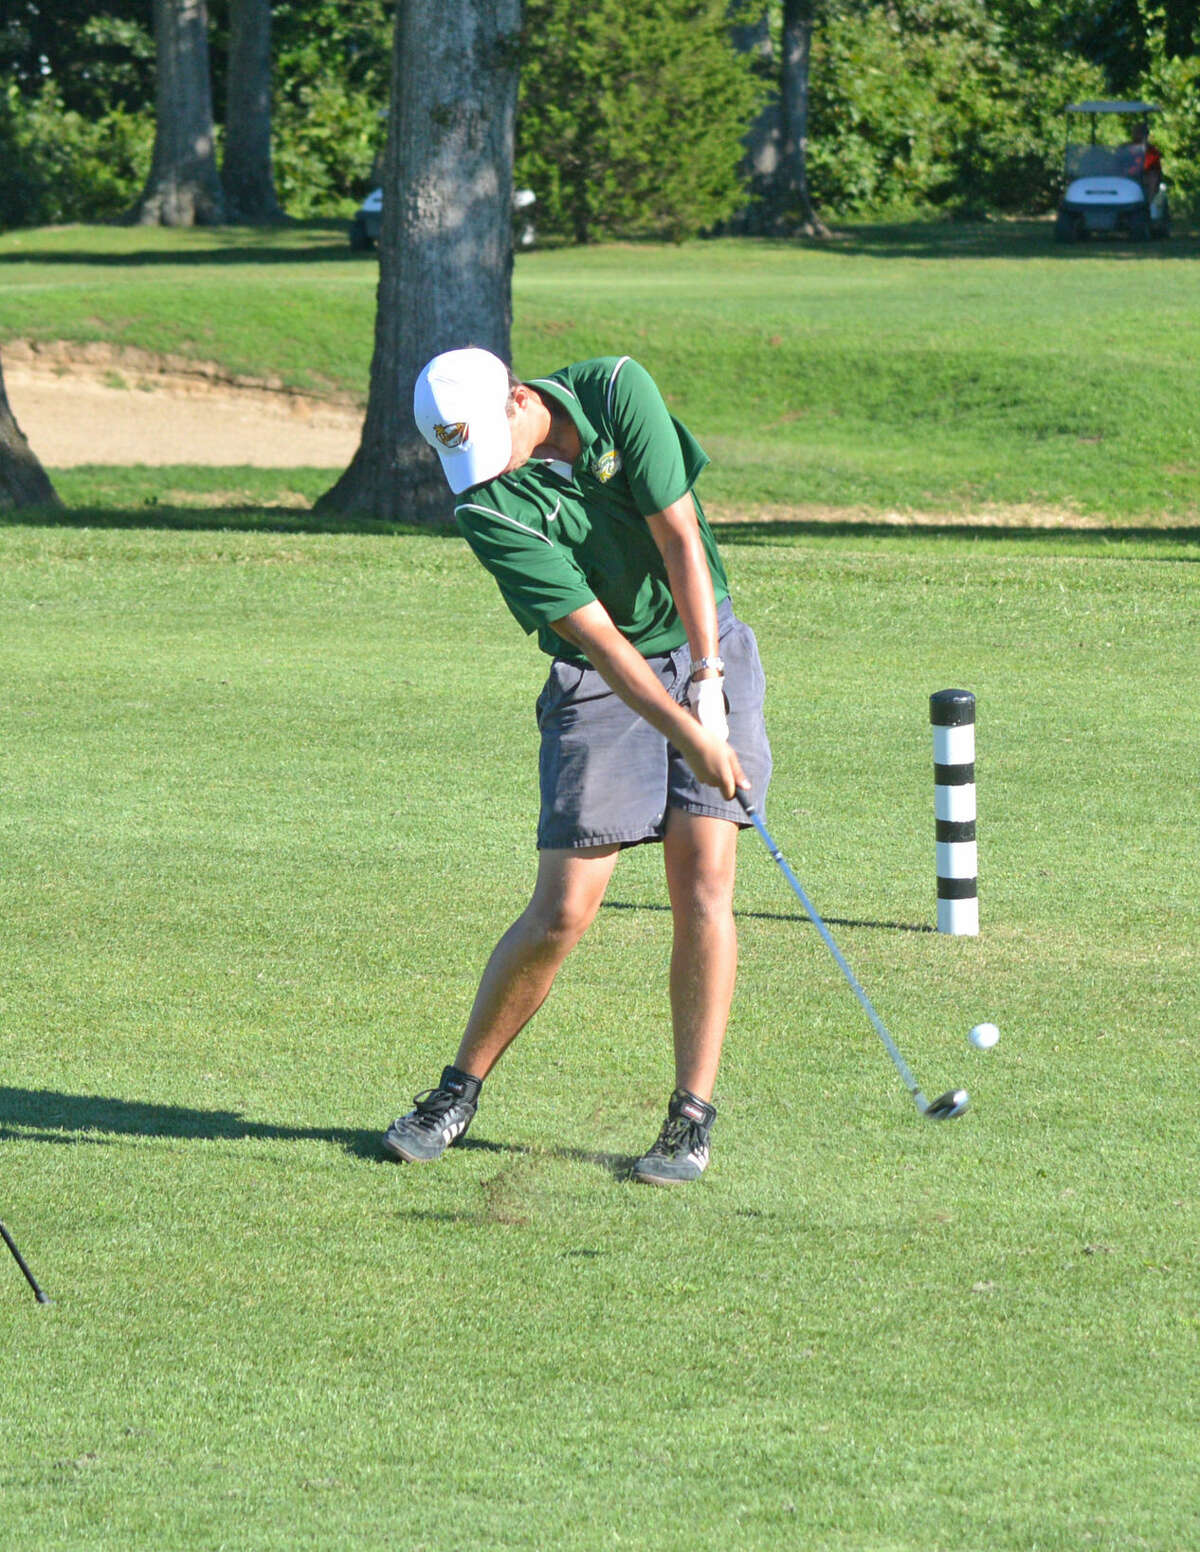 Metro-East Lutheran senior Mike Coulson hits his second shot on hole No. 5at Timber Lakes Golf Course during Monday's dual match against Staunton.